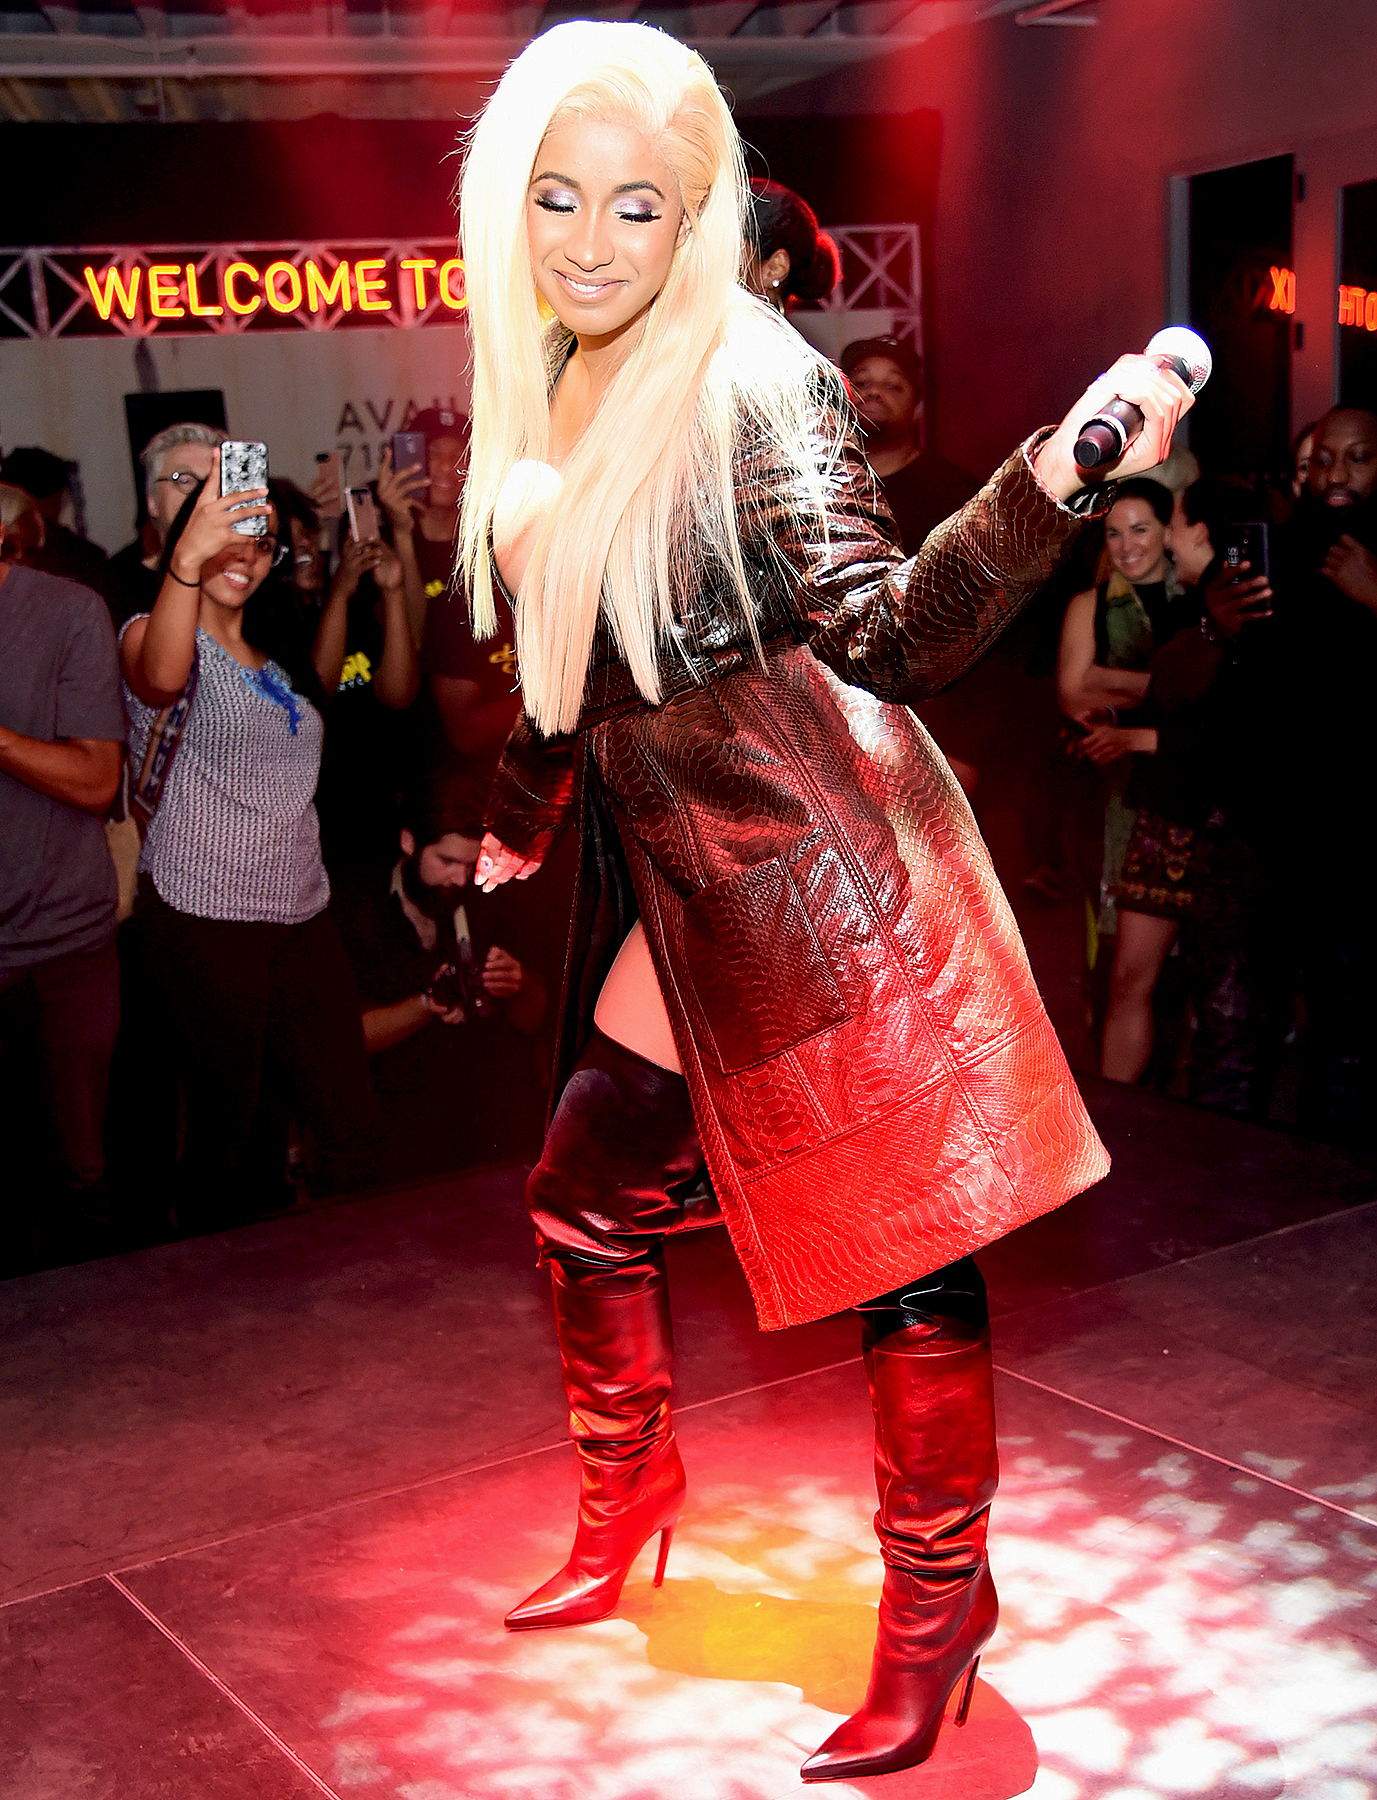 Cardi B performs during Airbnb's New York City Experiences Launch Event on September 26, 2017 in the Brooklyn borough of New York City City.